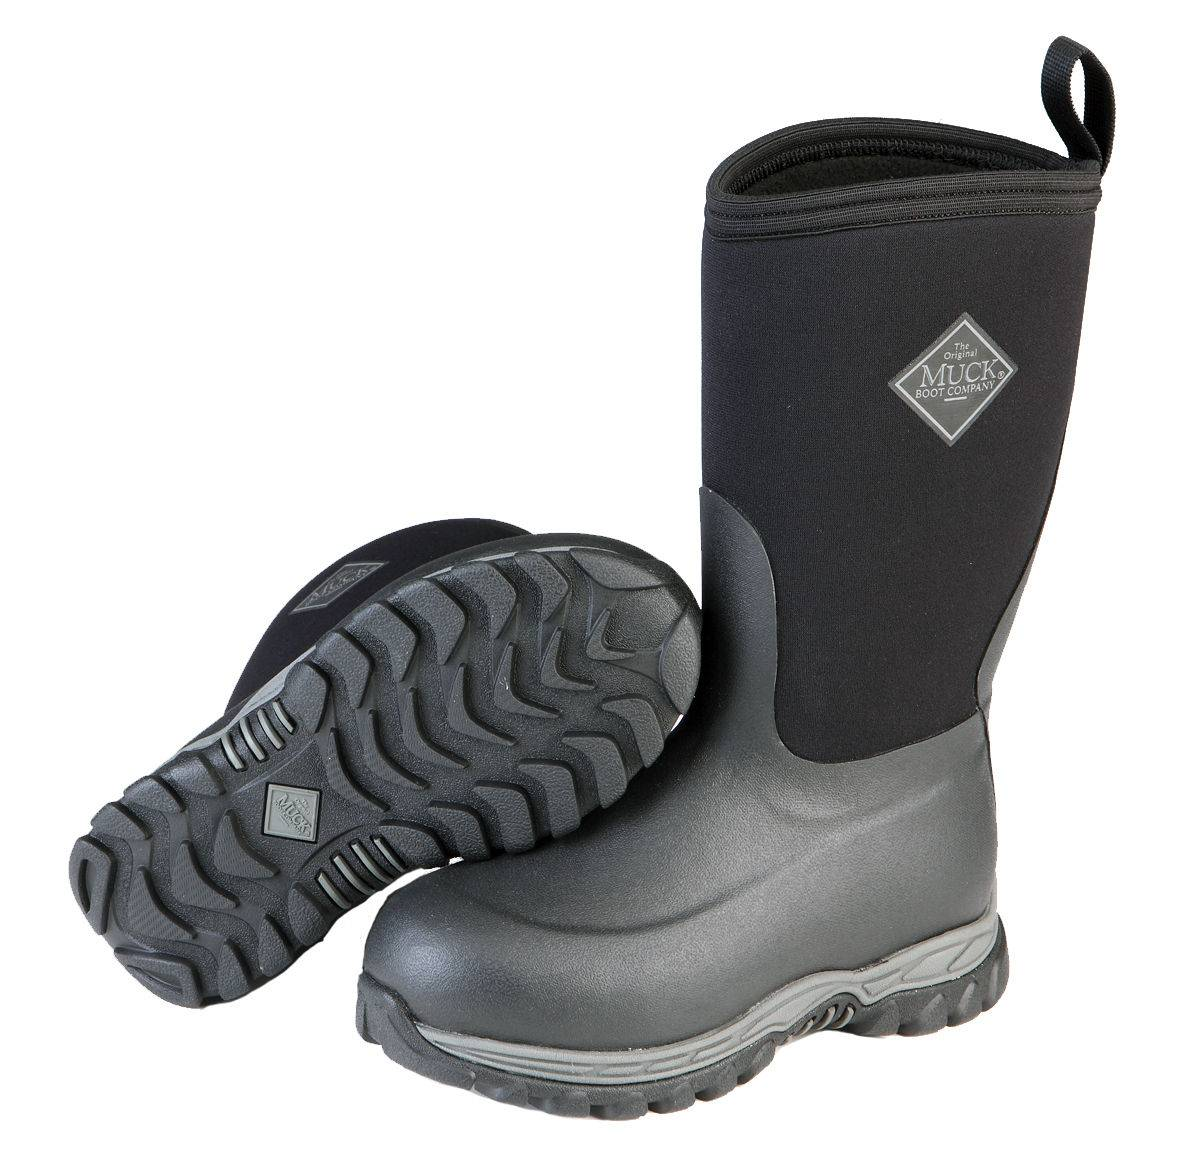 Muck Boots Rugged II - Kids - Black